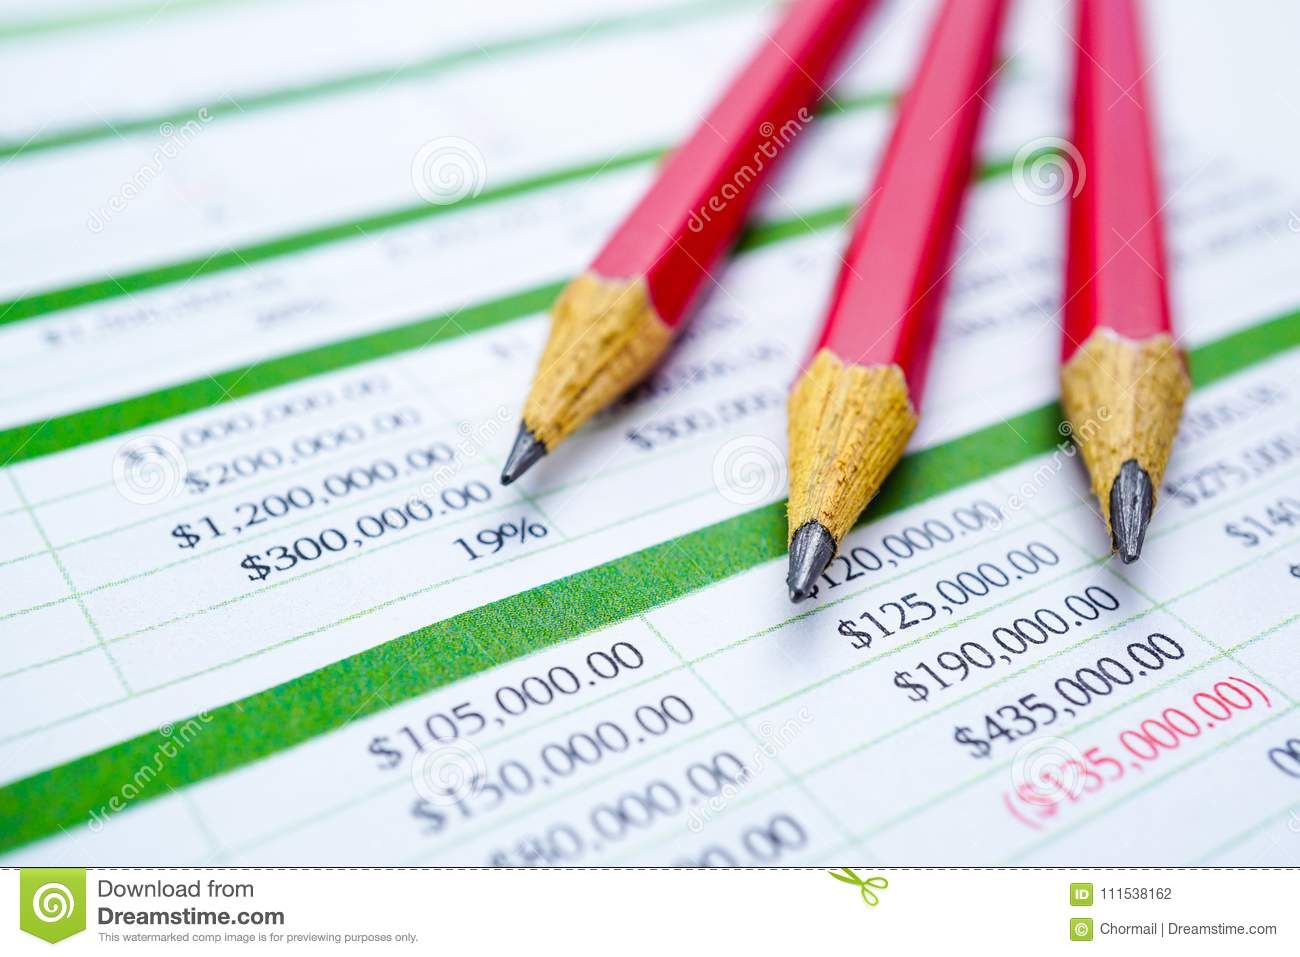 Spreadsheet Table Paper With Pencil. Finance Development, Banking And Spreadsheet Development